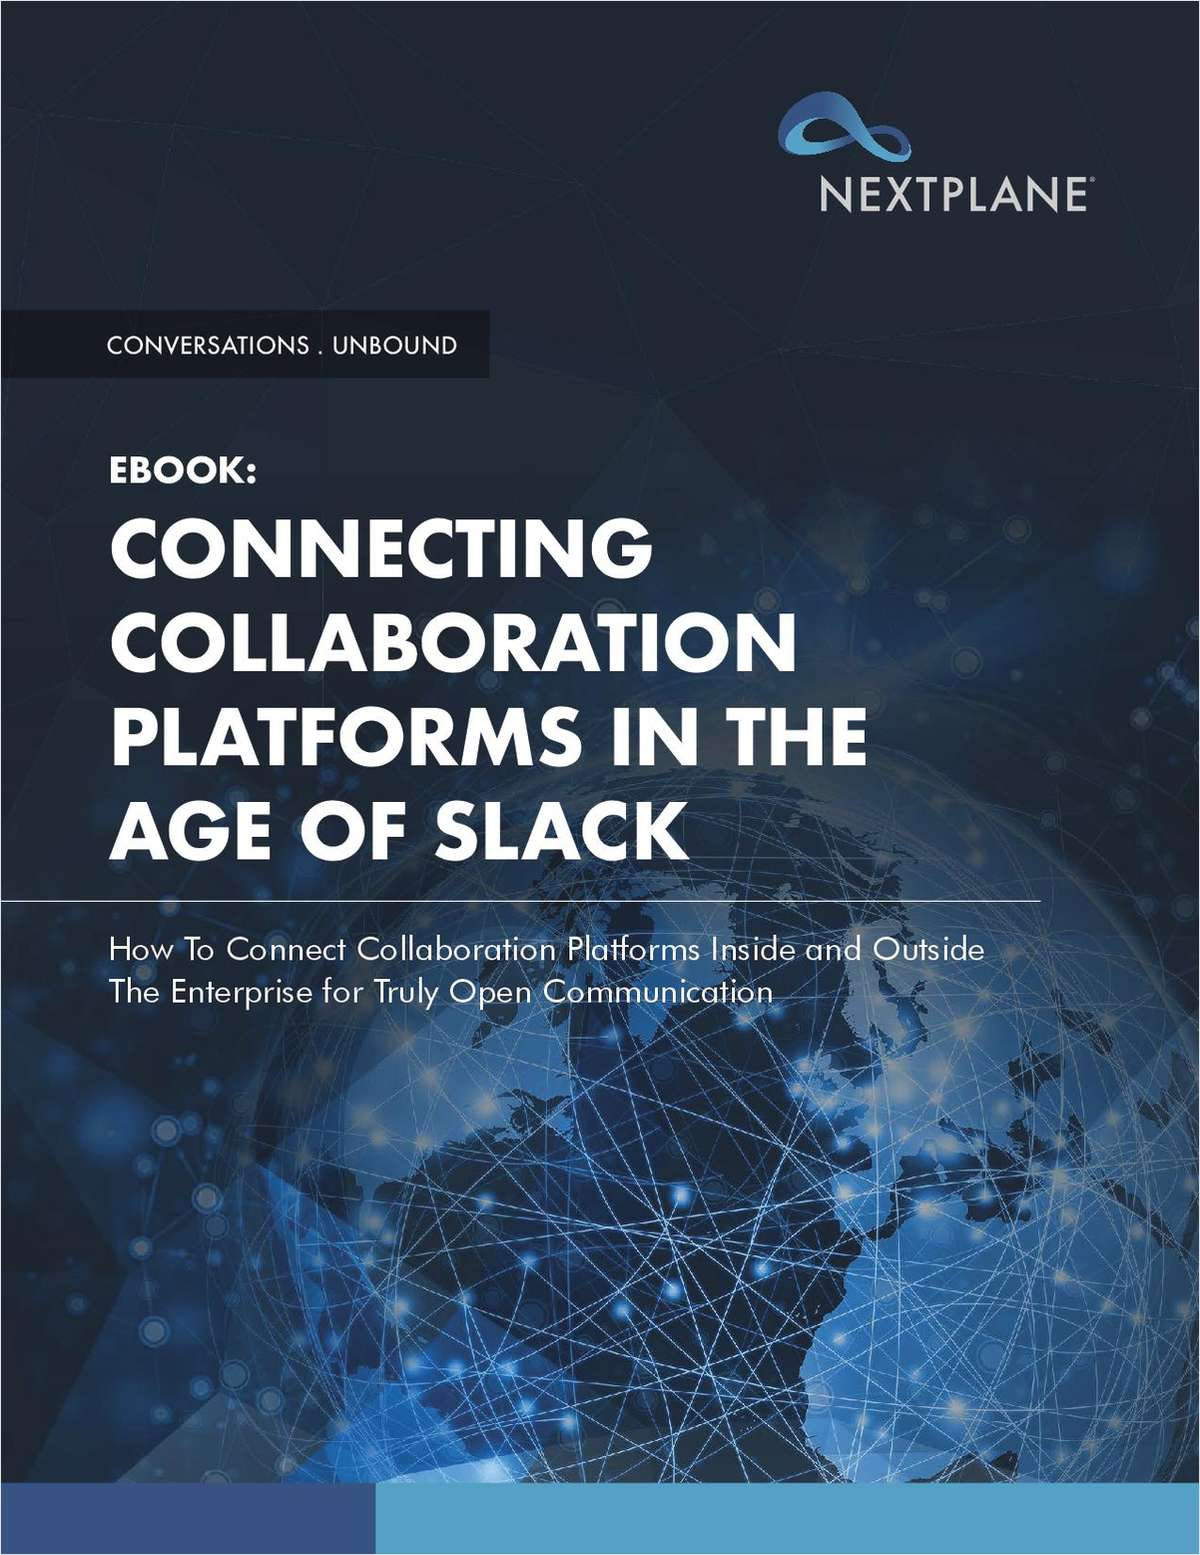 Connecting Collaboration Platforms In The Age Of Slack